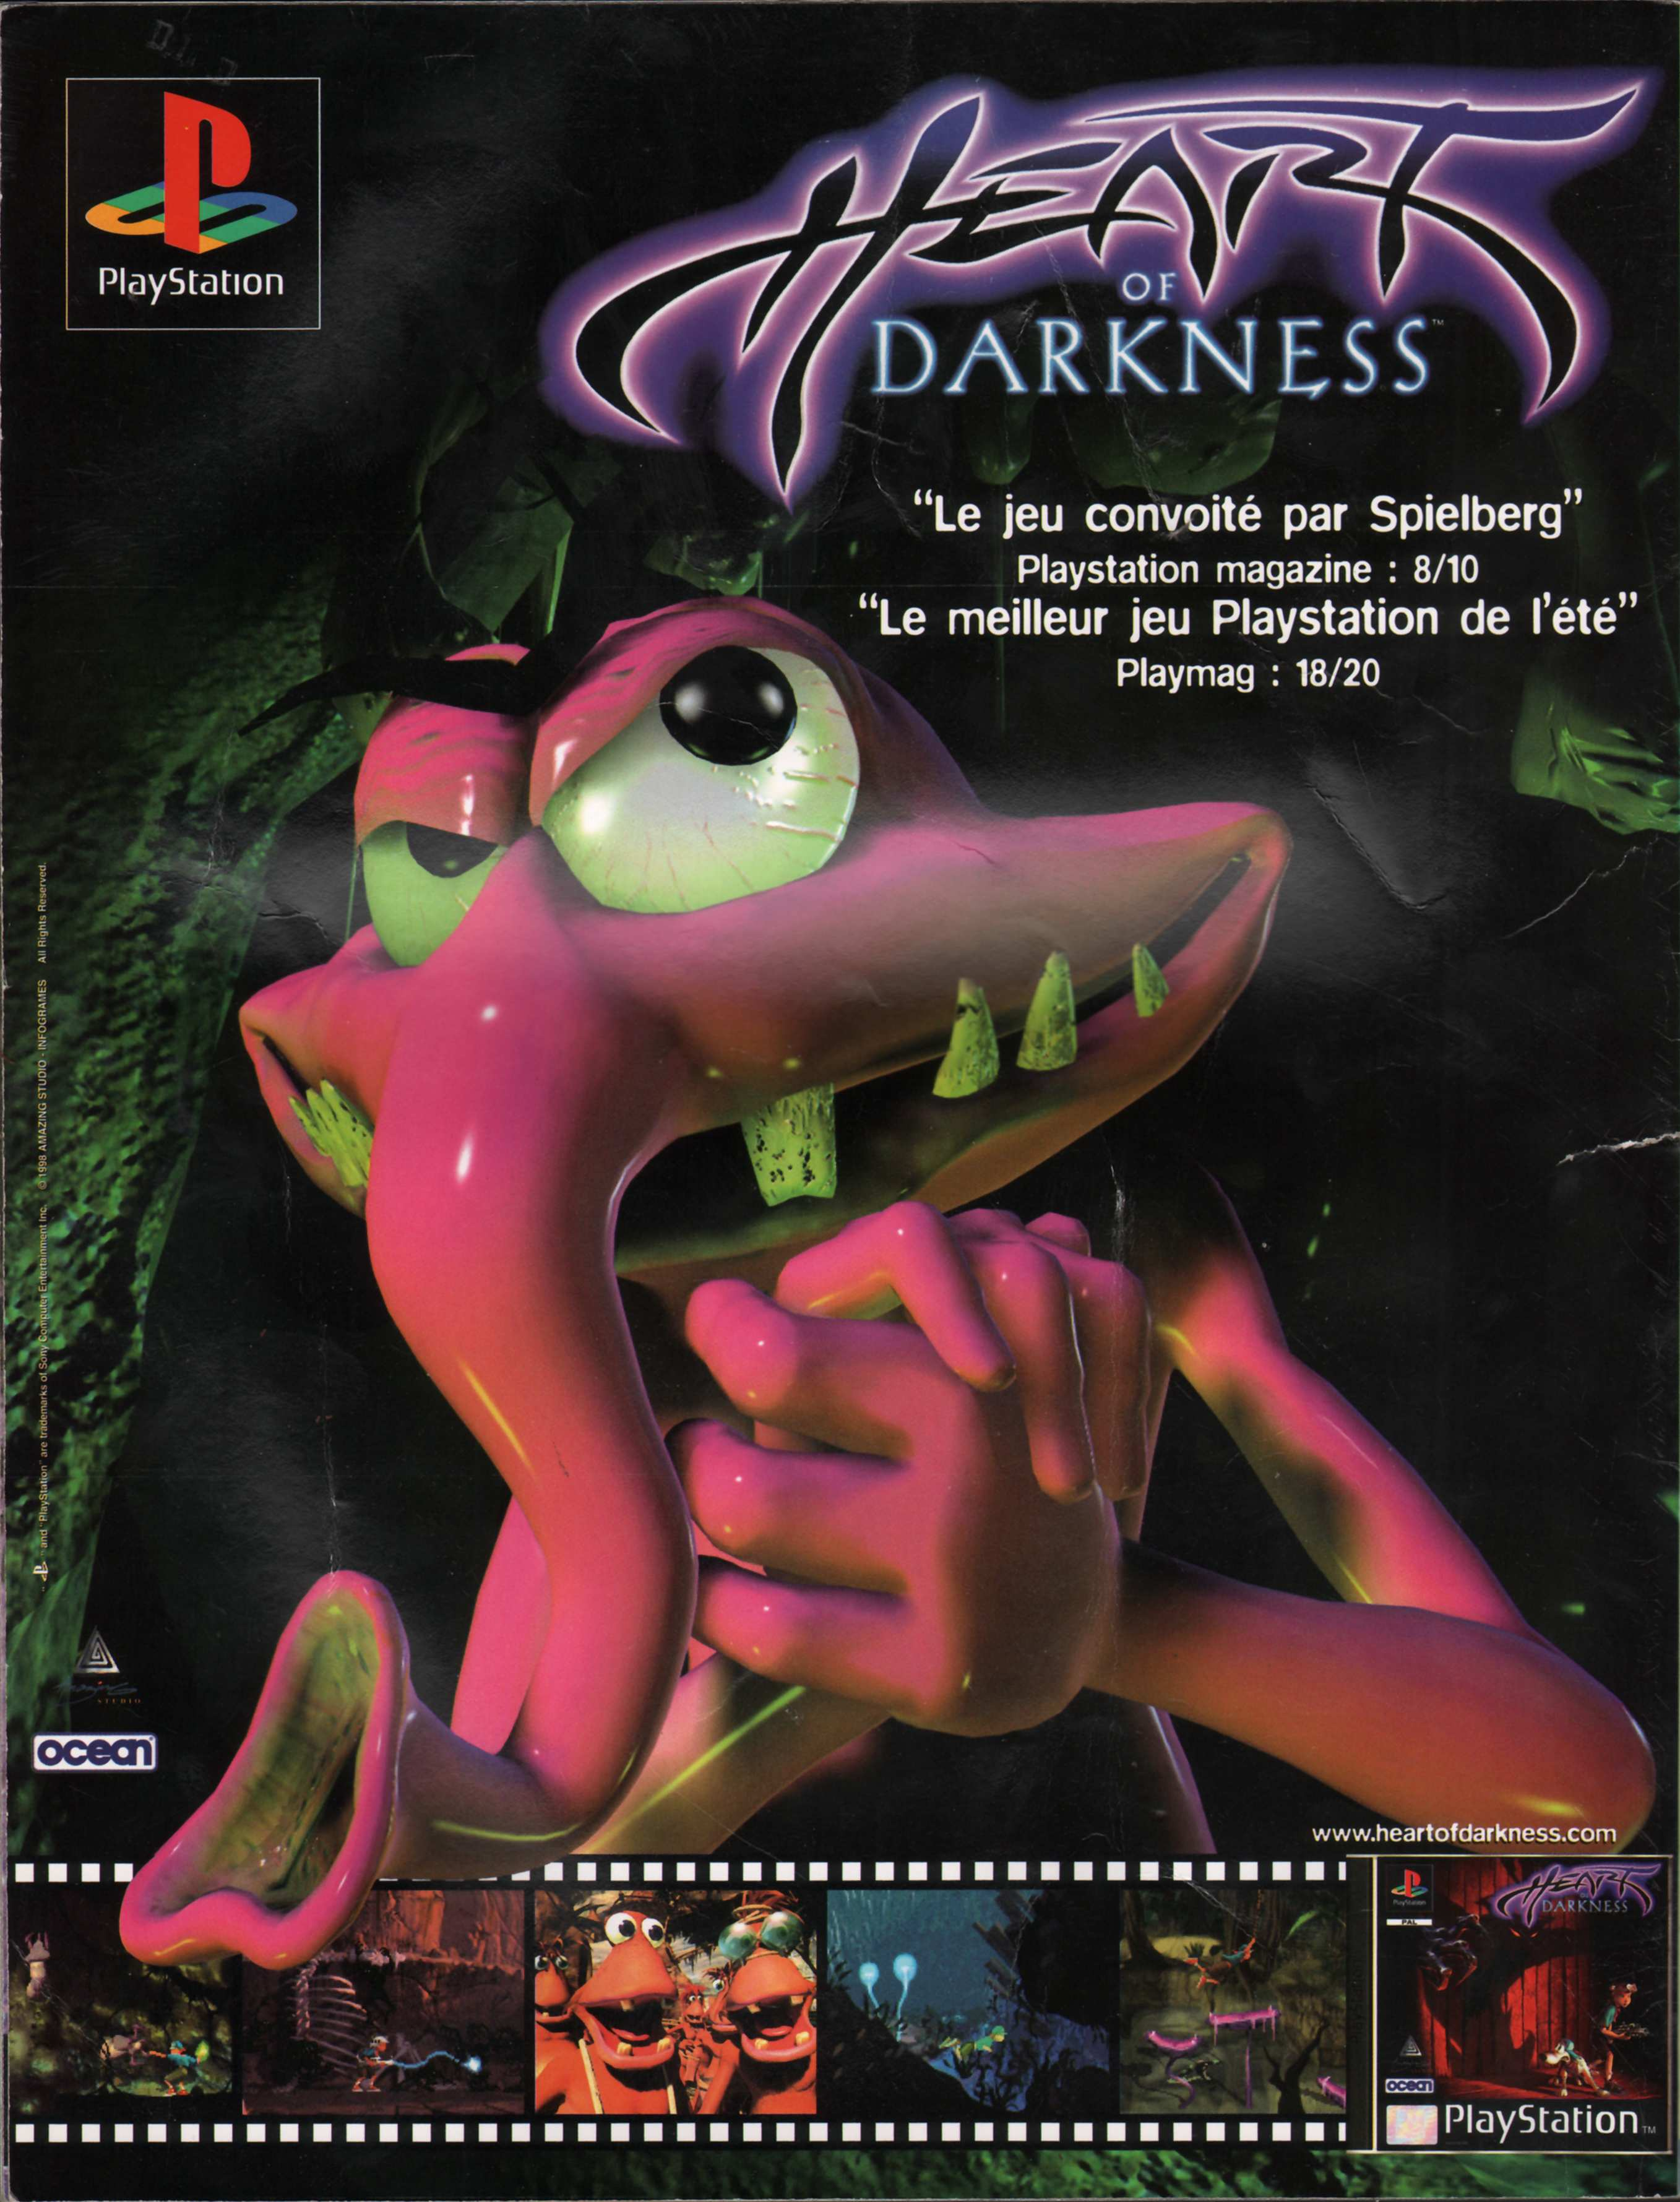 Heart of darkness Playstation%20Magazine%20HS4%20-%20Page%20132%20(1998-07-08-09)